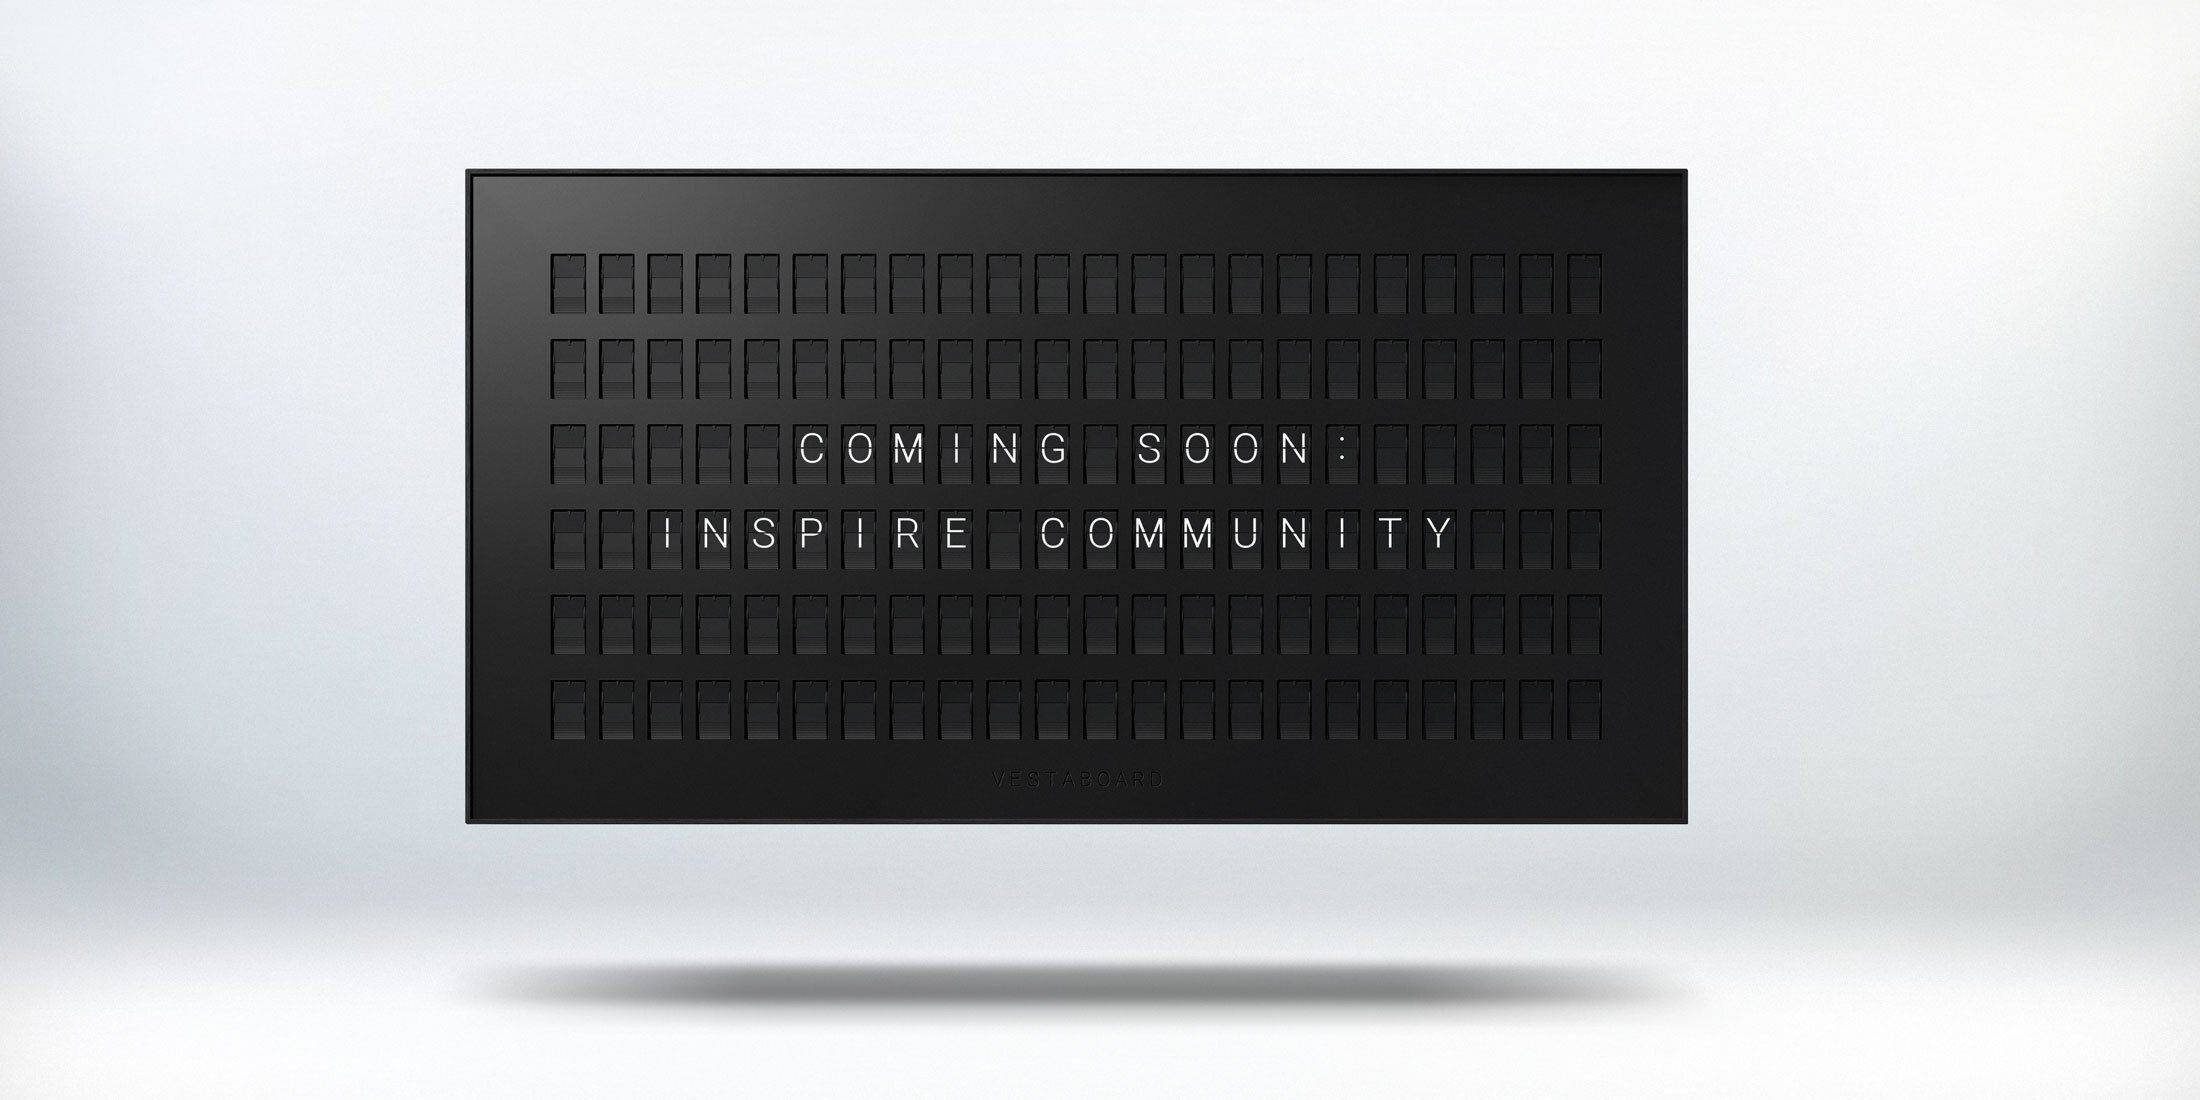 Vestaboard shows Coming Soon: Inspire Community